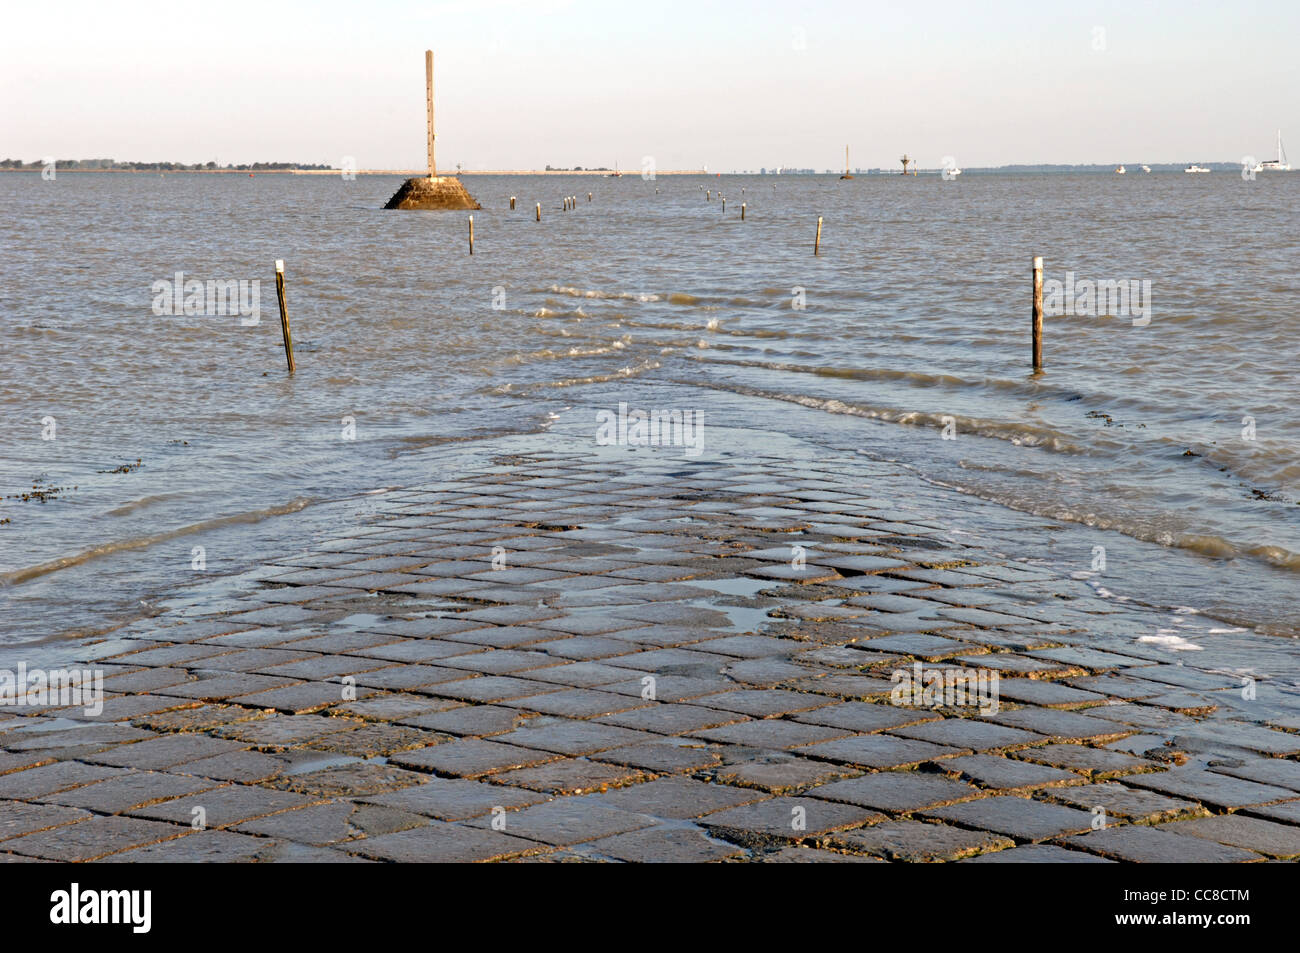 Submerged Passage du Gois from the mainland to the Ile de Noirmoutier in the Vendee (85) departement of France - Stock Image